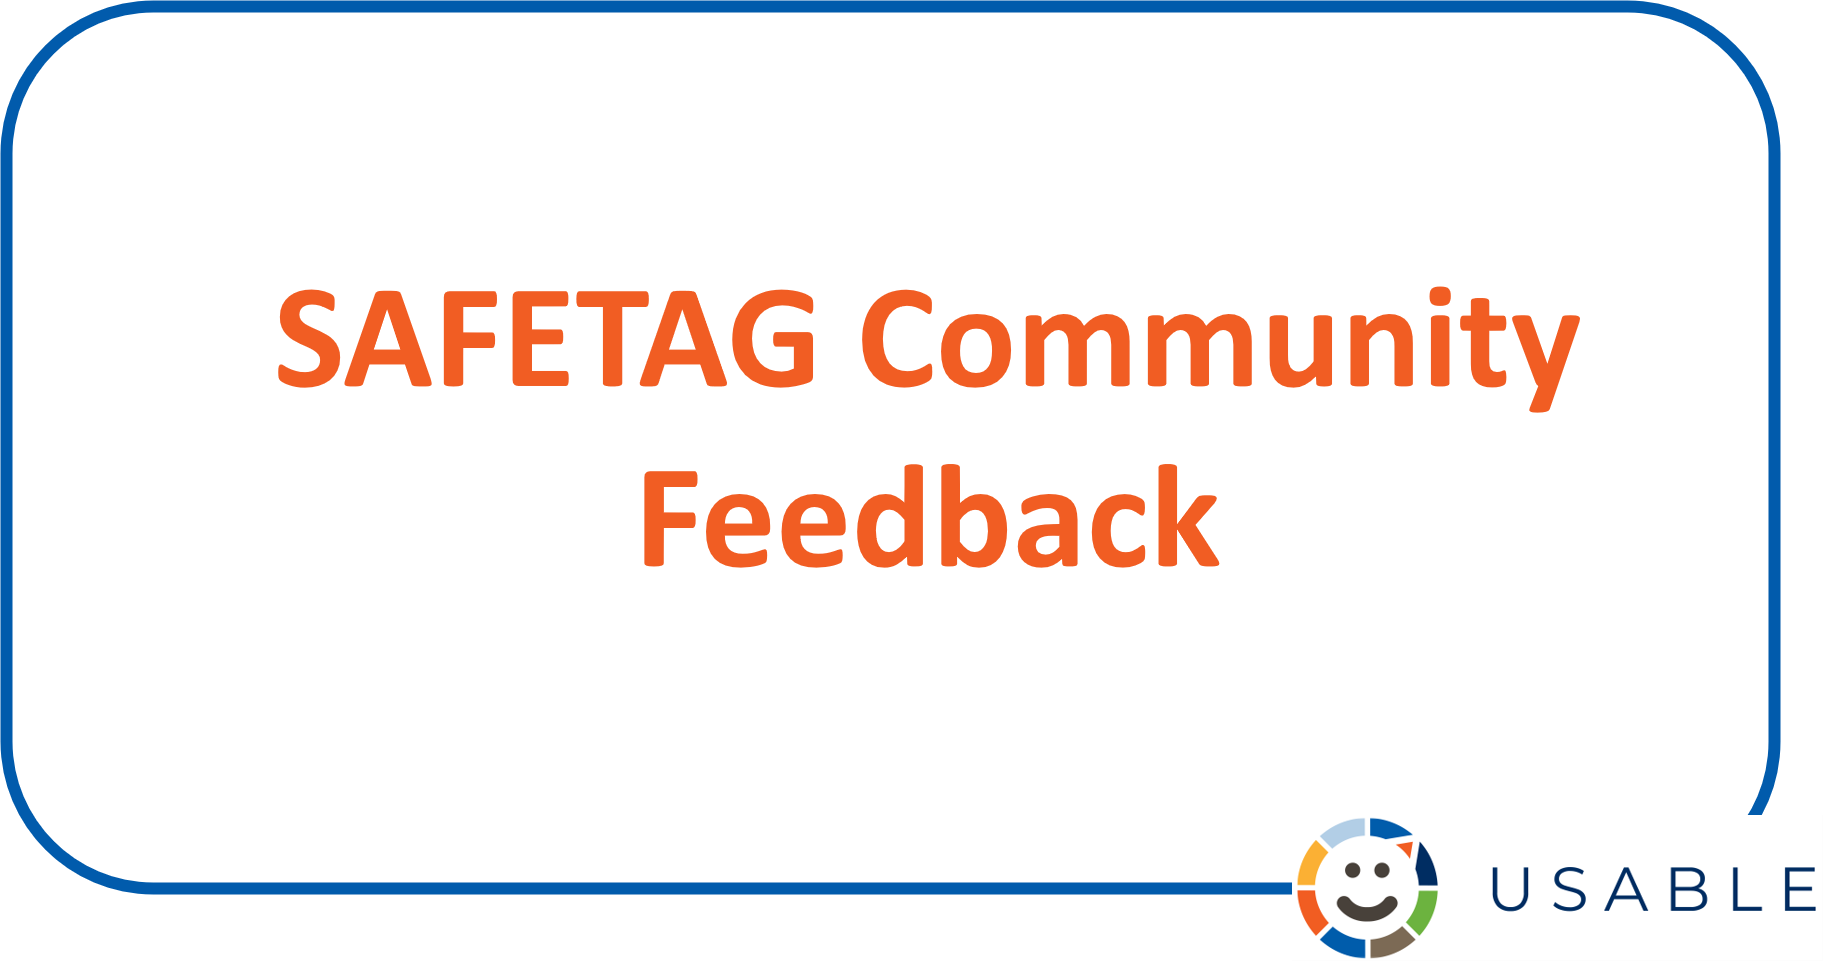 Image with title SAFETAG Community Feedback